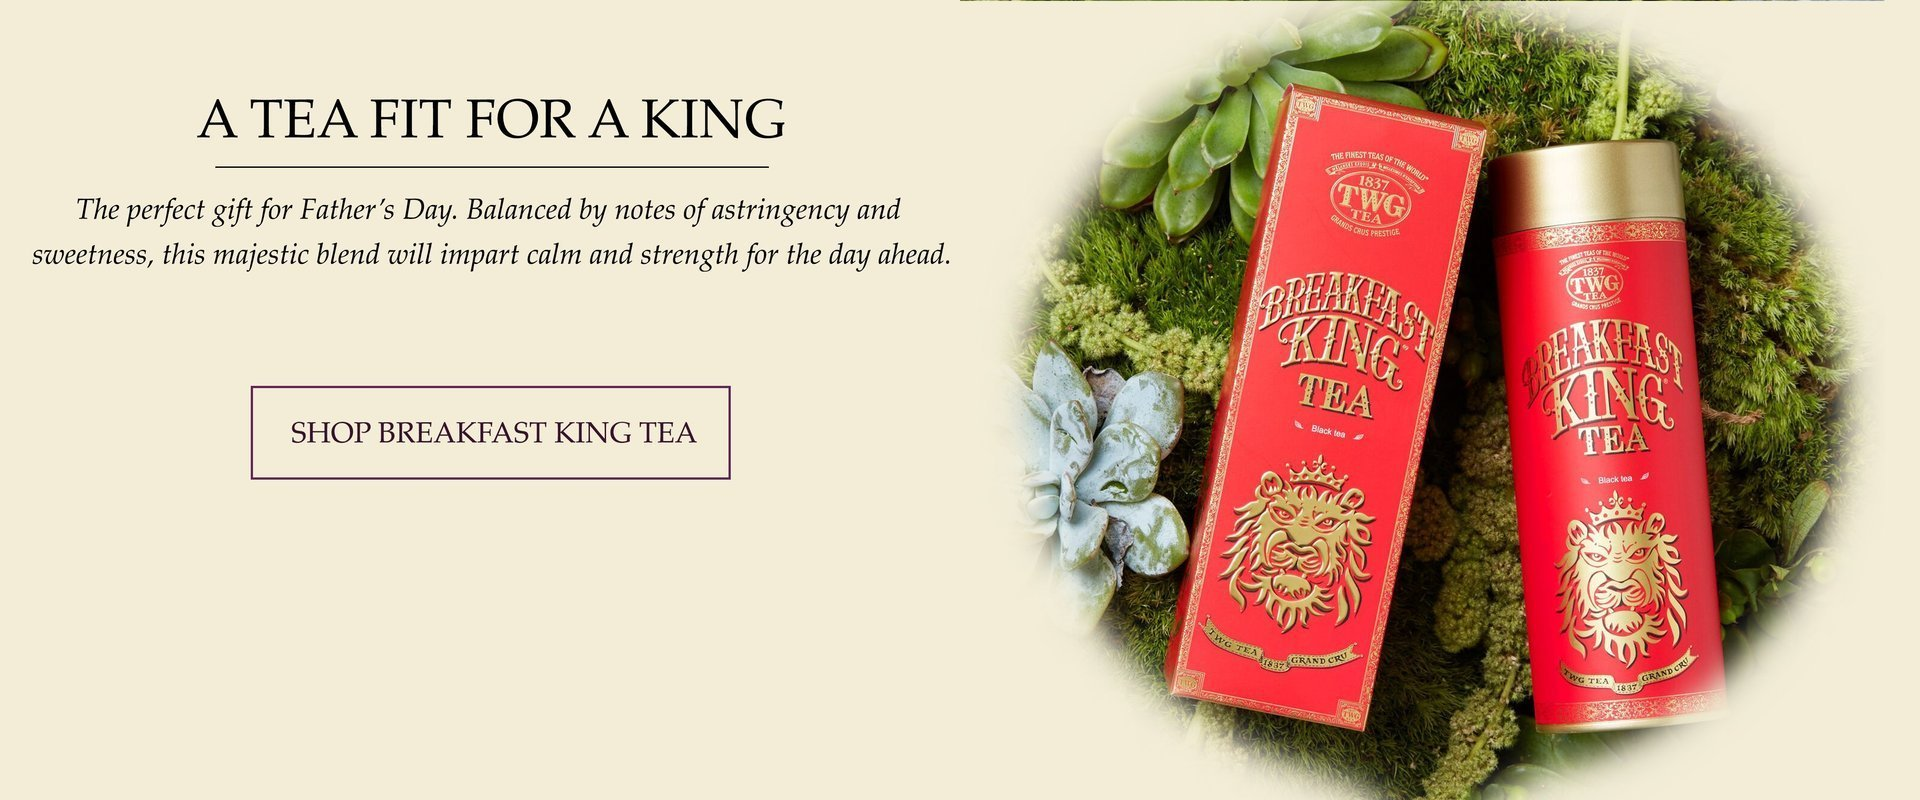 TWG Tea launches the Sakura Tea Set in honour of this special season!